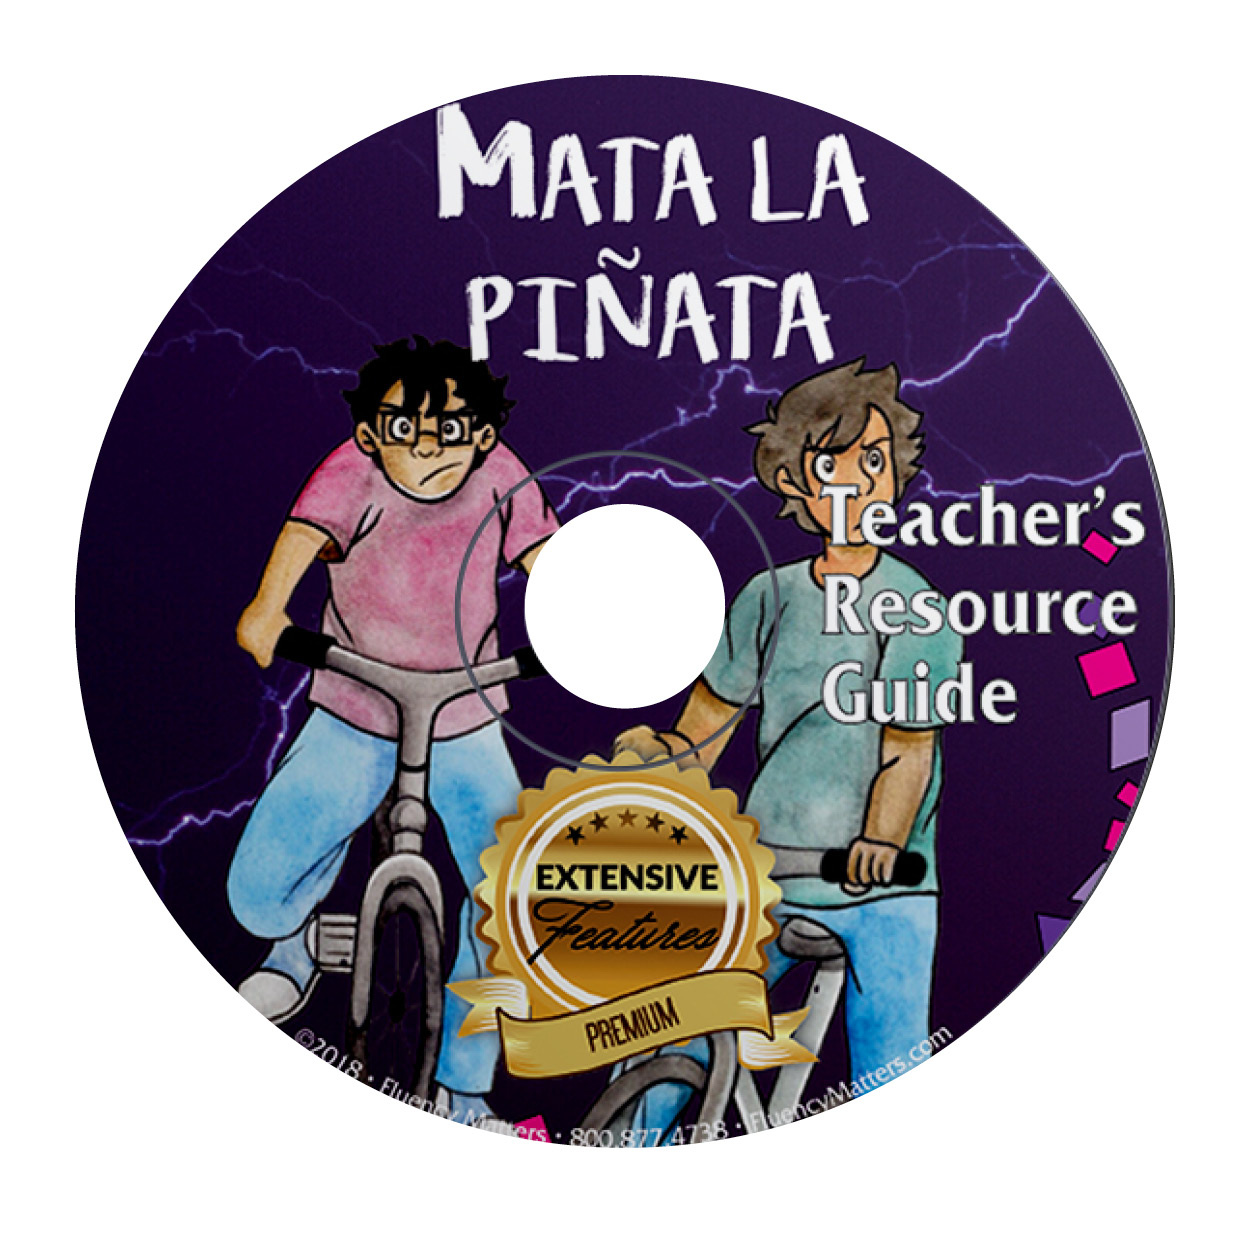 Mata la piñata - Teacher's Guide